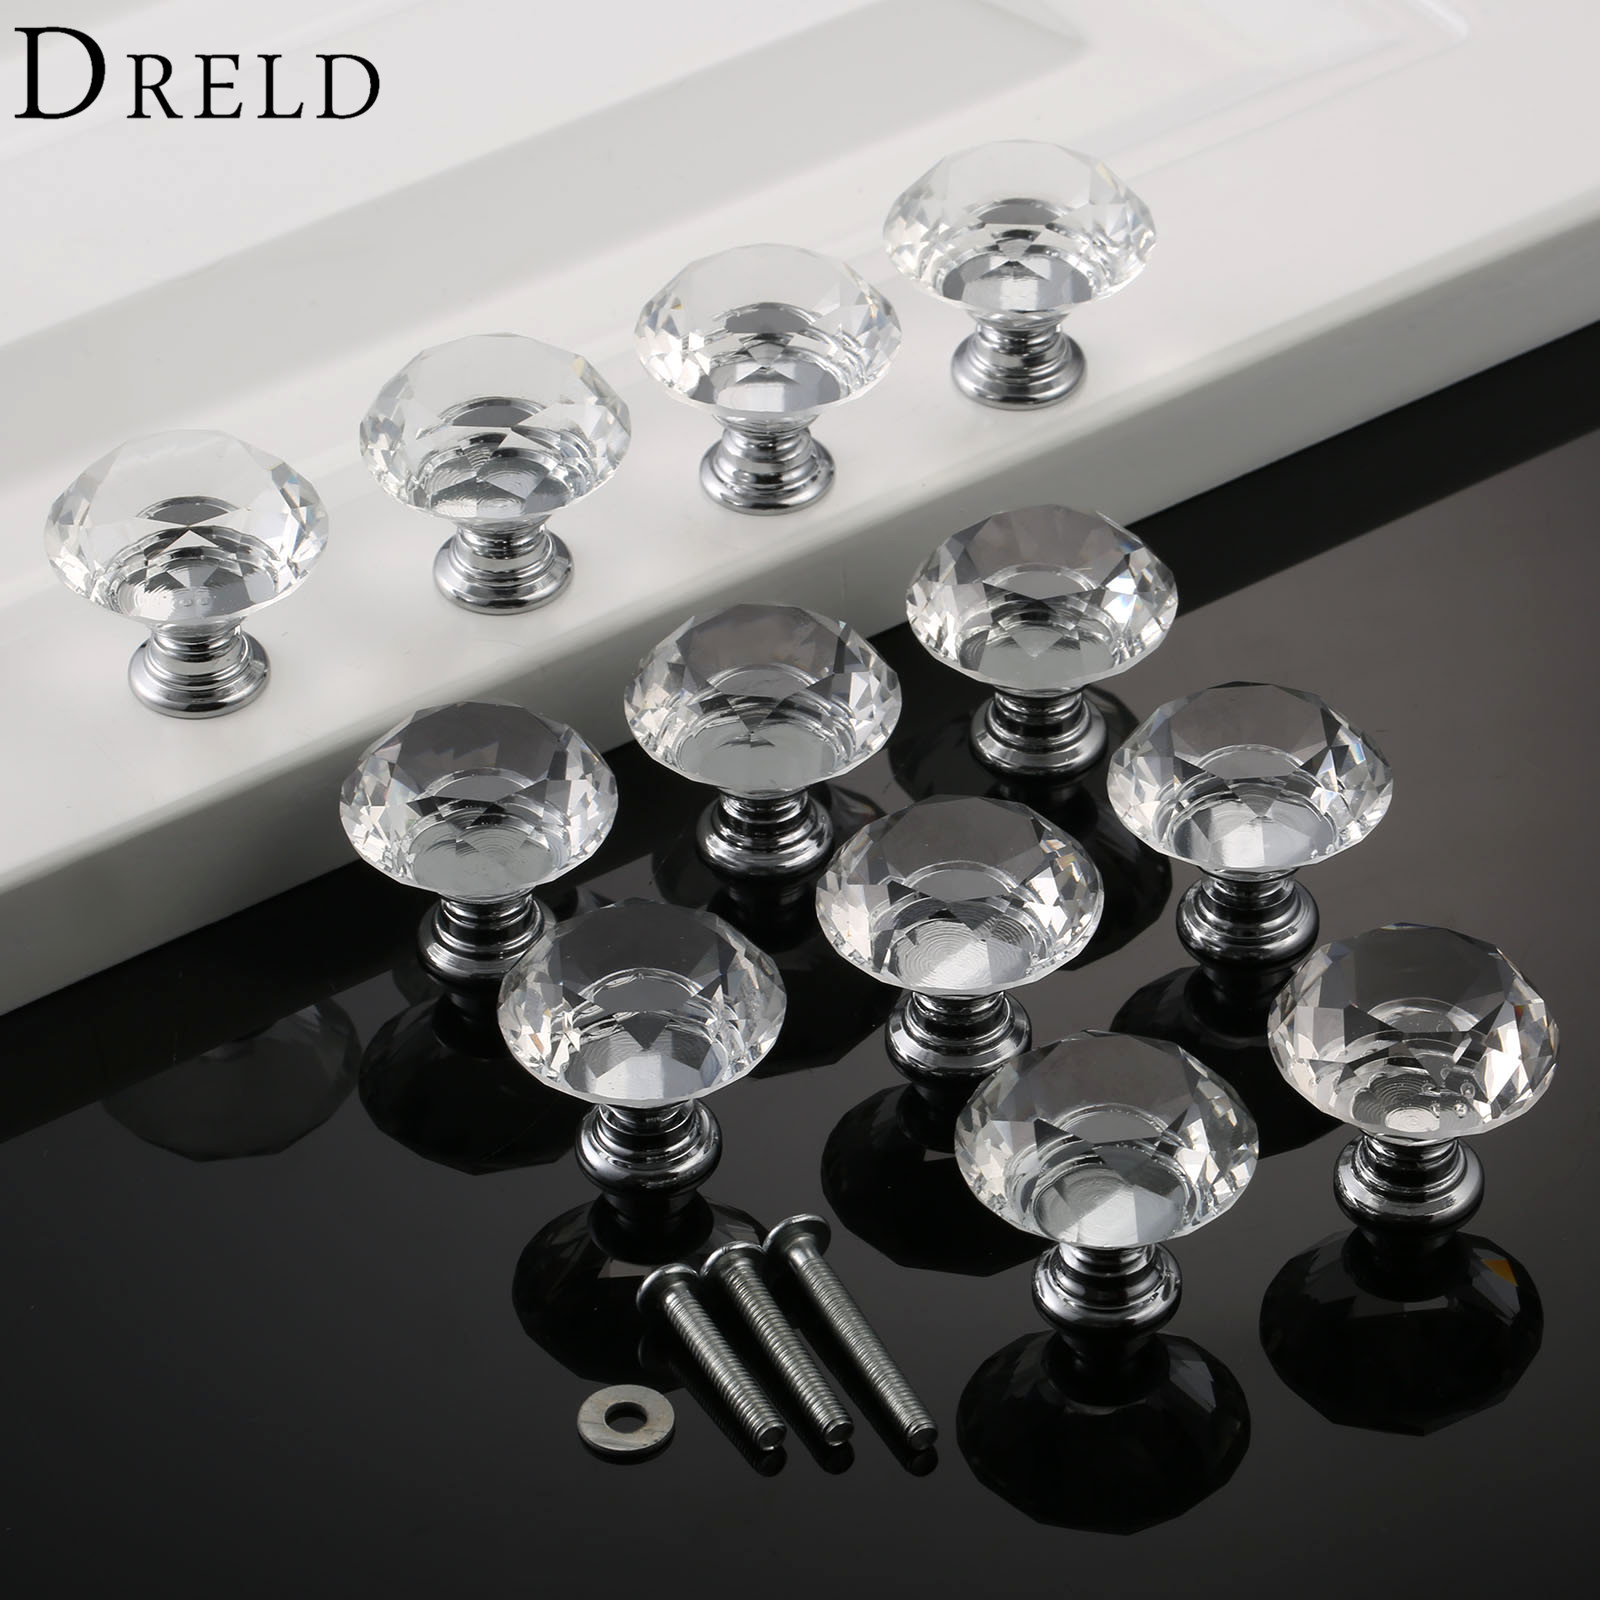 DRELD 12Pcs 30mm Diamond Crystal Glass Knob Cupboard Drawer Pull Handle Kitchen Door Cabinet Knobs and Handles with 36Pcs Screws 10 pcs 30mm diamond shape crystal glass drawer cabinet knobs and pull handles kitchen door wardrobe hardware accessories